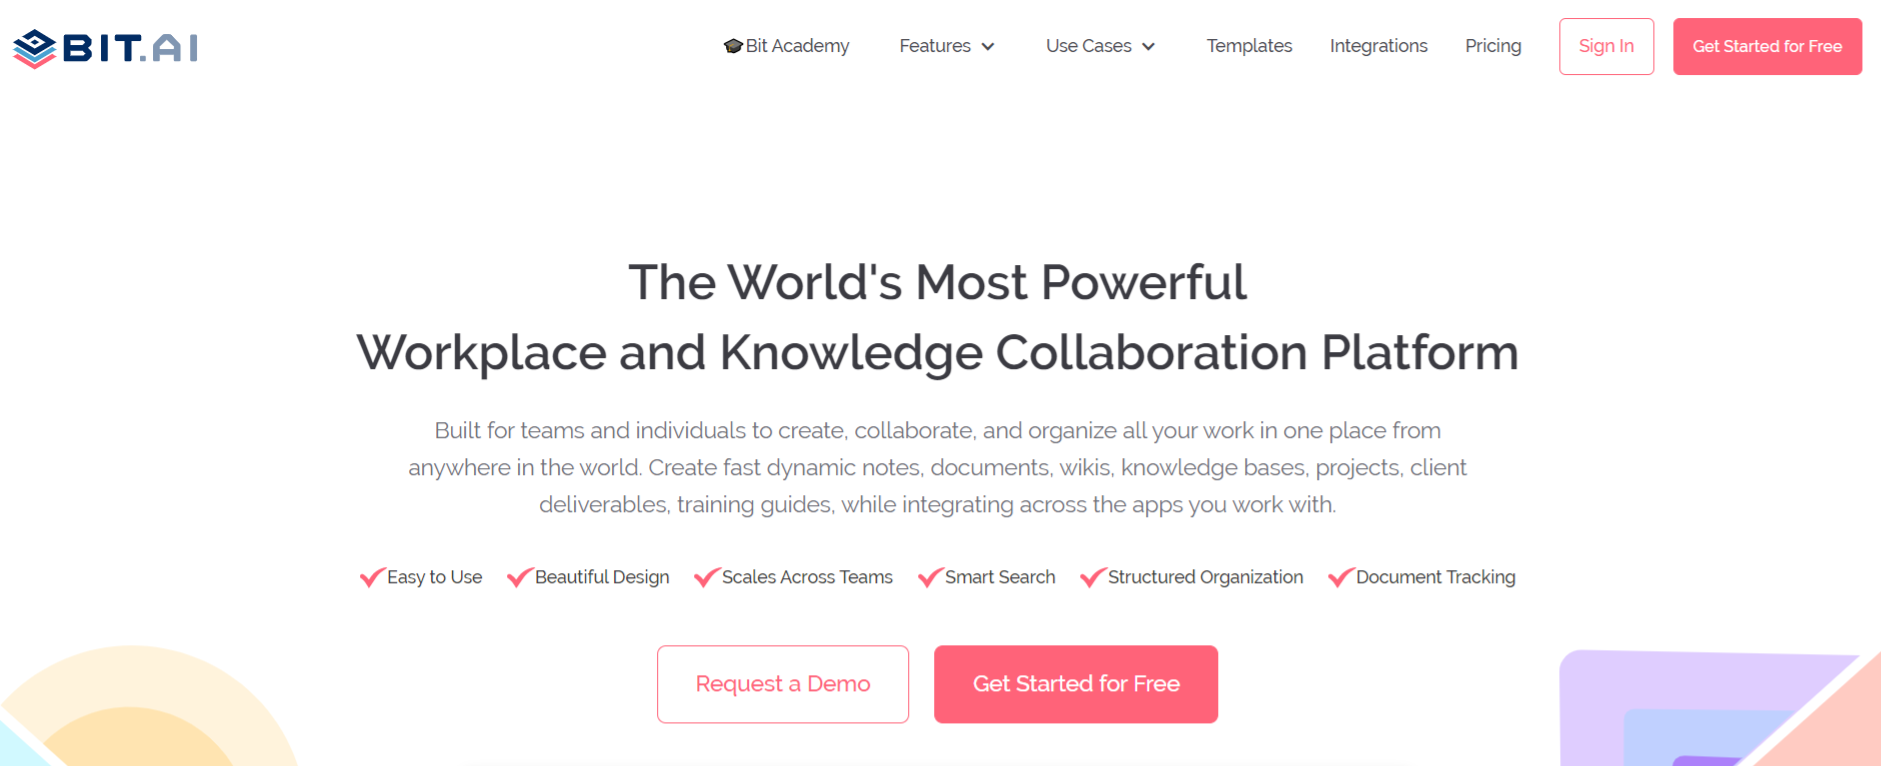 Bit.ai: Tool for creating procurement management plan